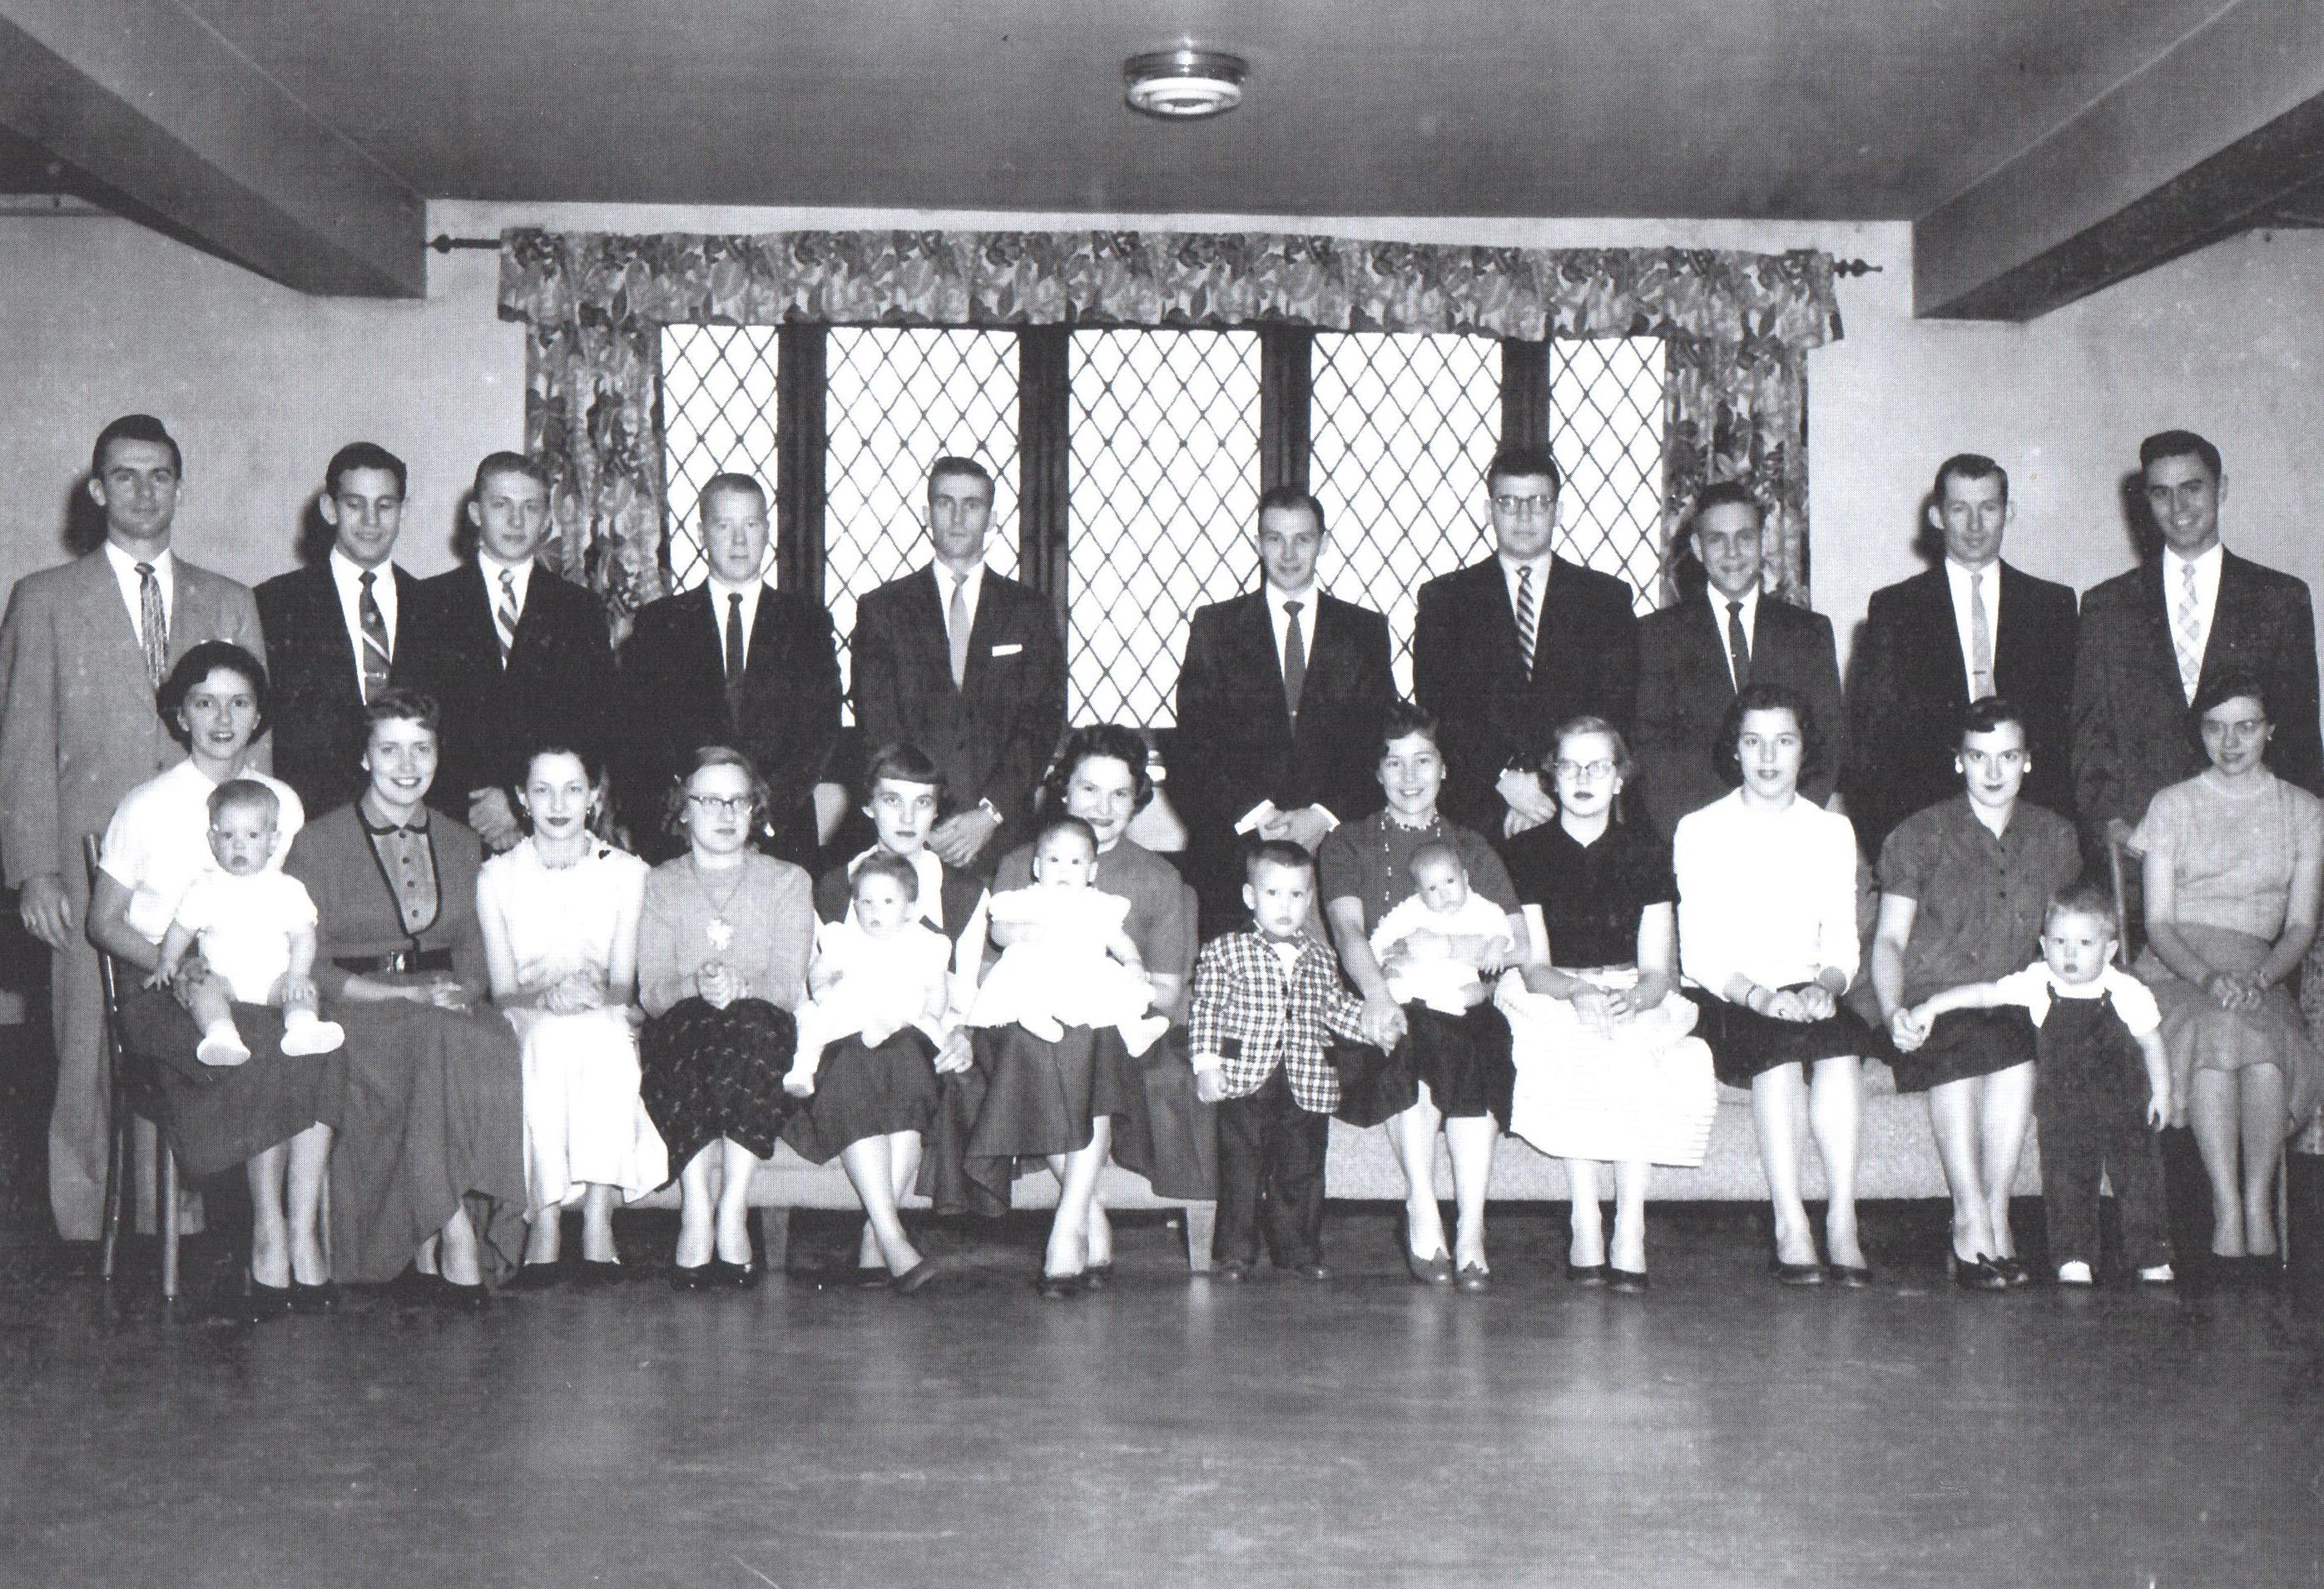 Another image of married students who lived on campus with their children. This group of veterans, spouses and children held monthly get togethers. Some of these get togethers include cookout, and social dances.